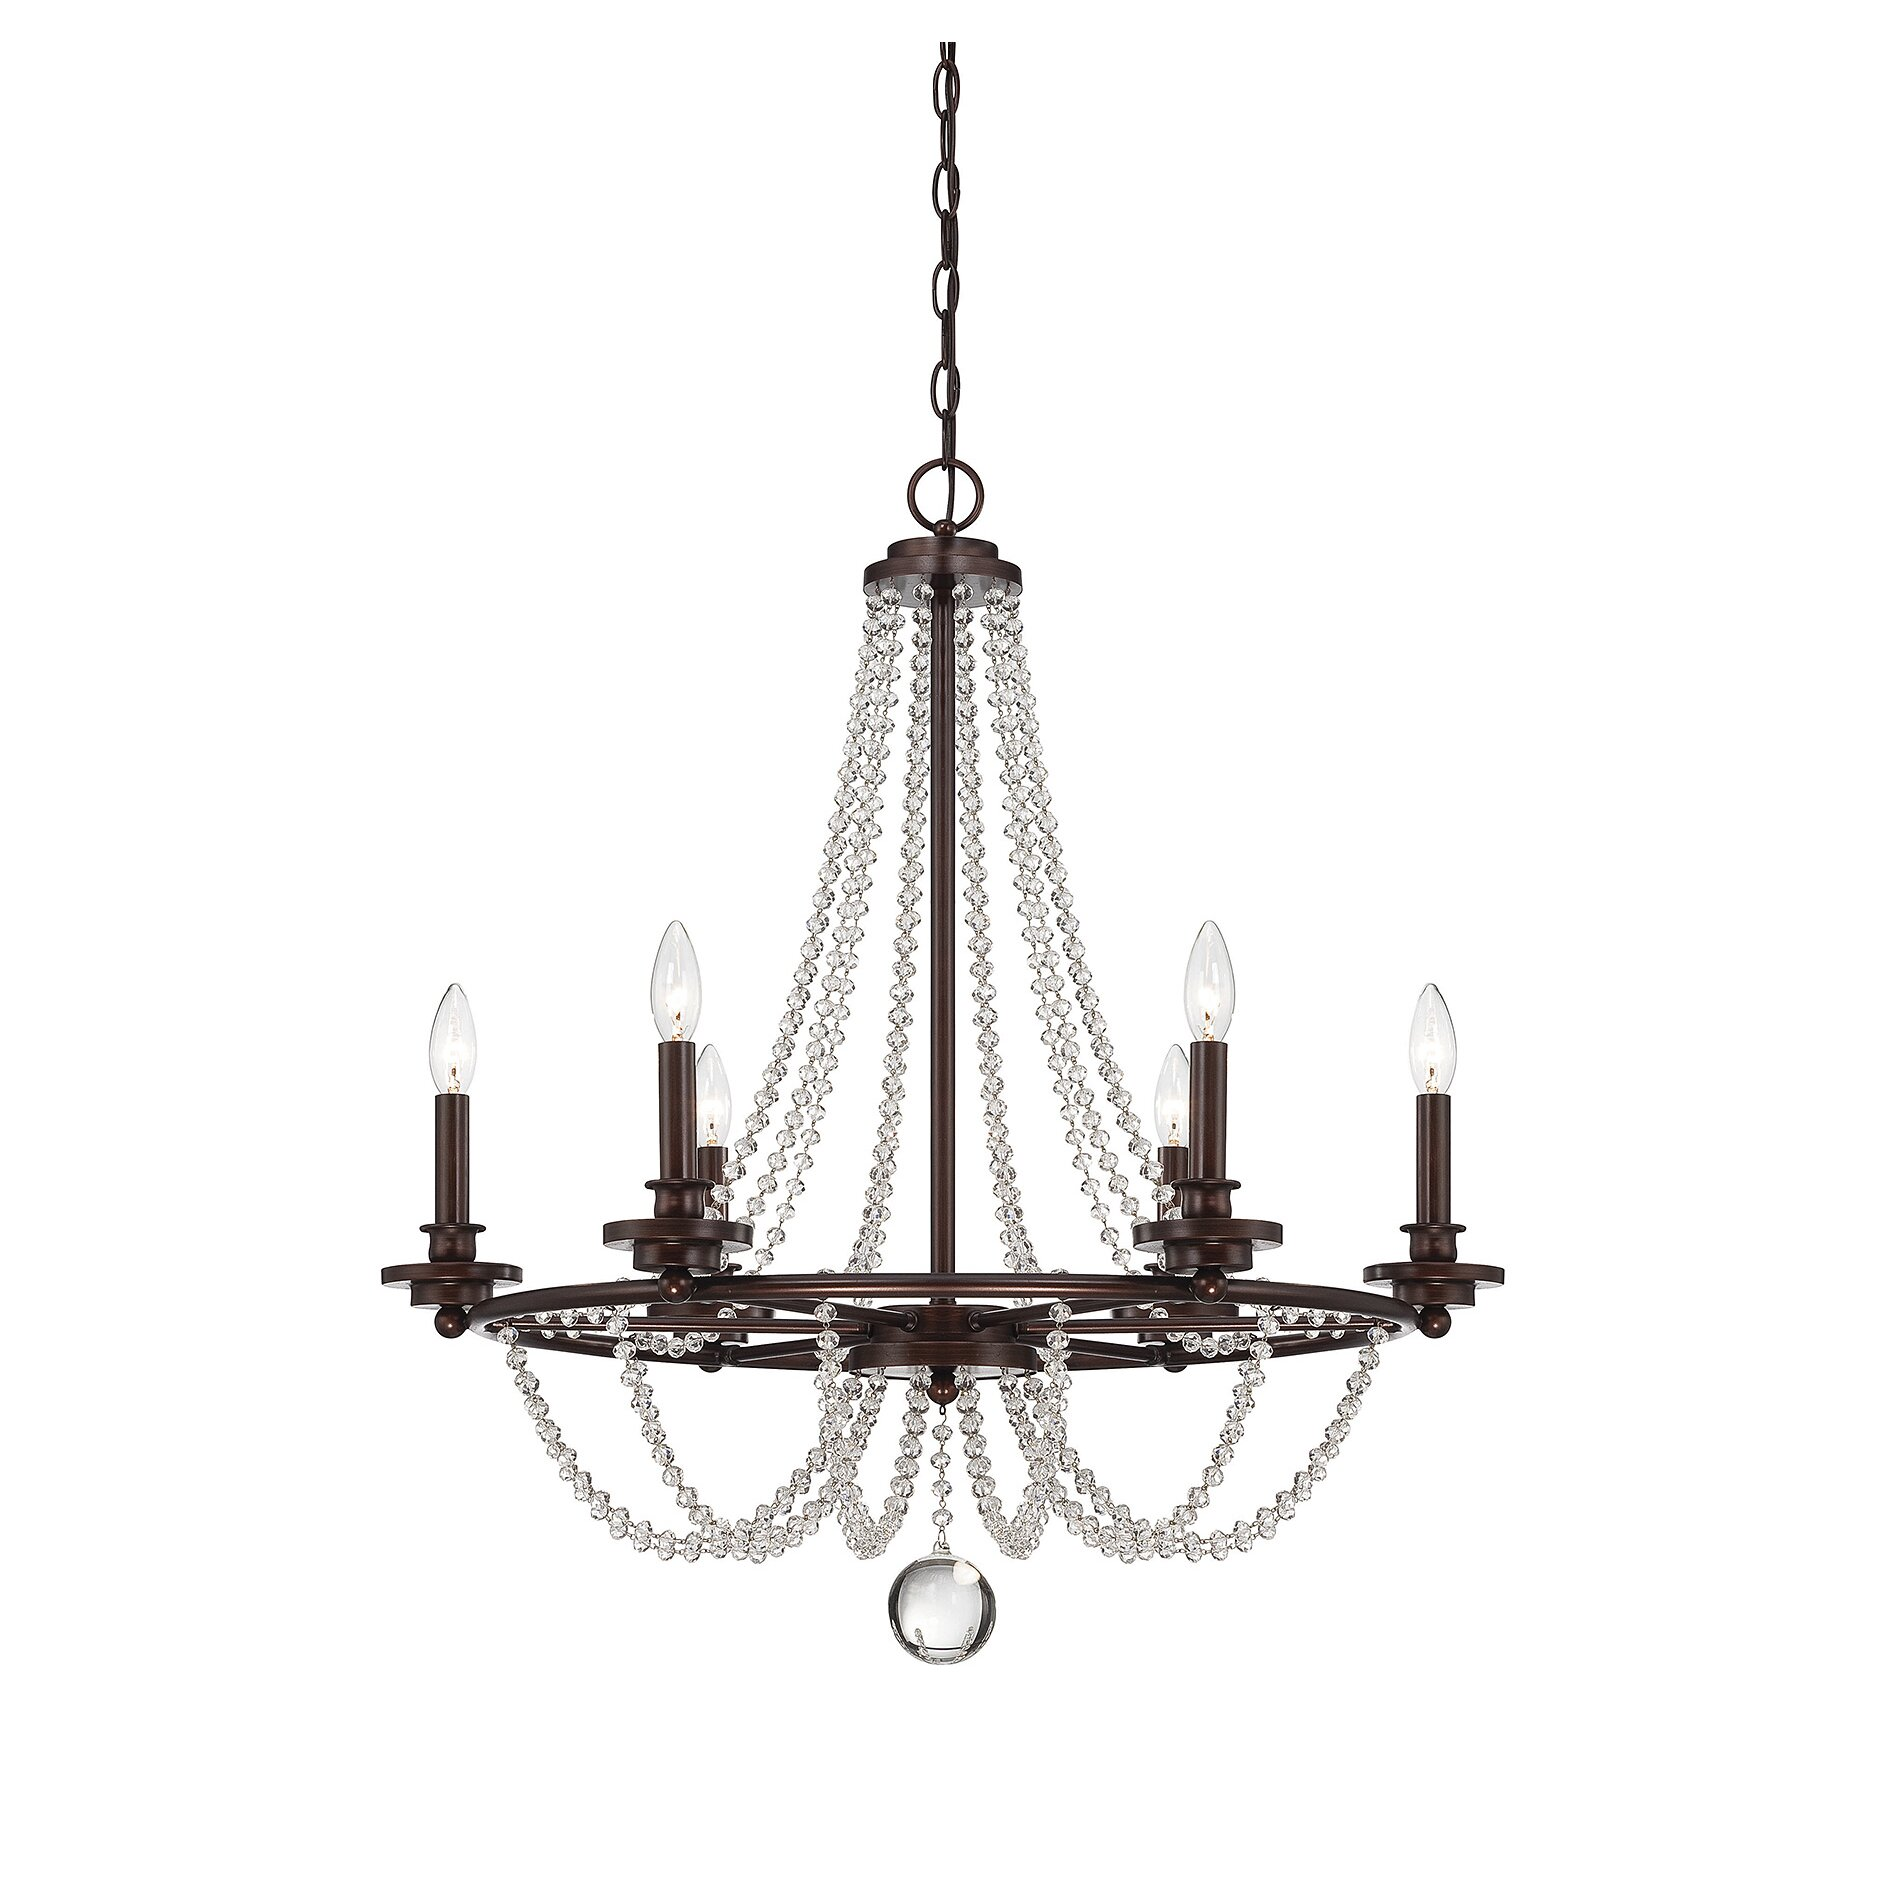 Wayfair Chandelier: Savoy House Byanca 6 Light Candle Chandelier & Reviews